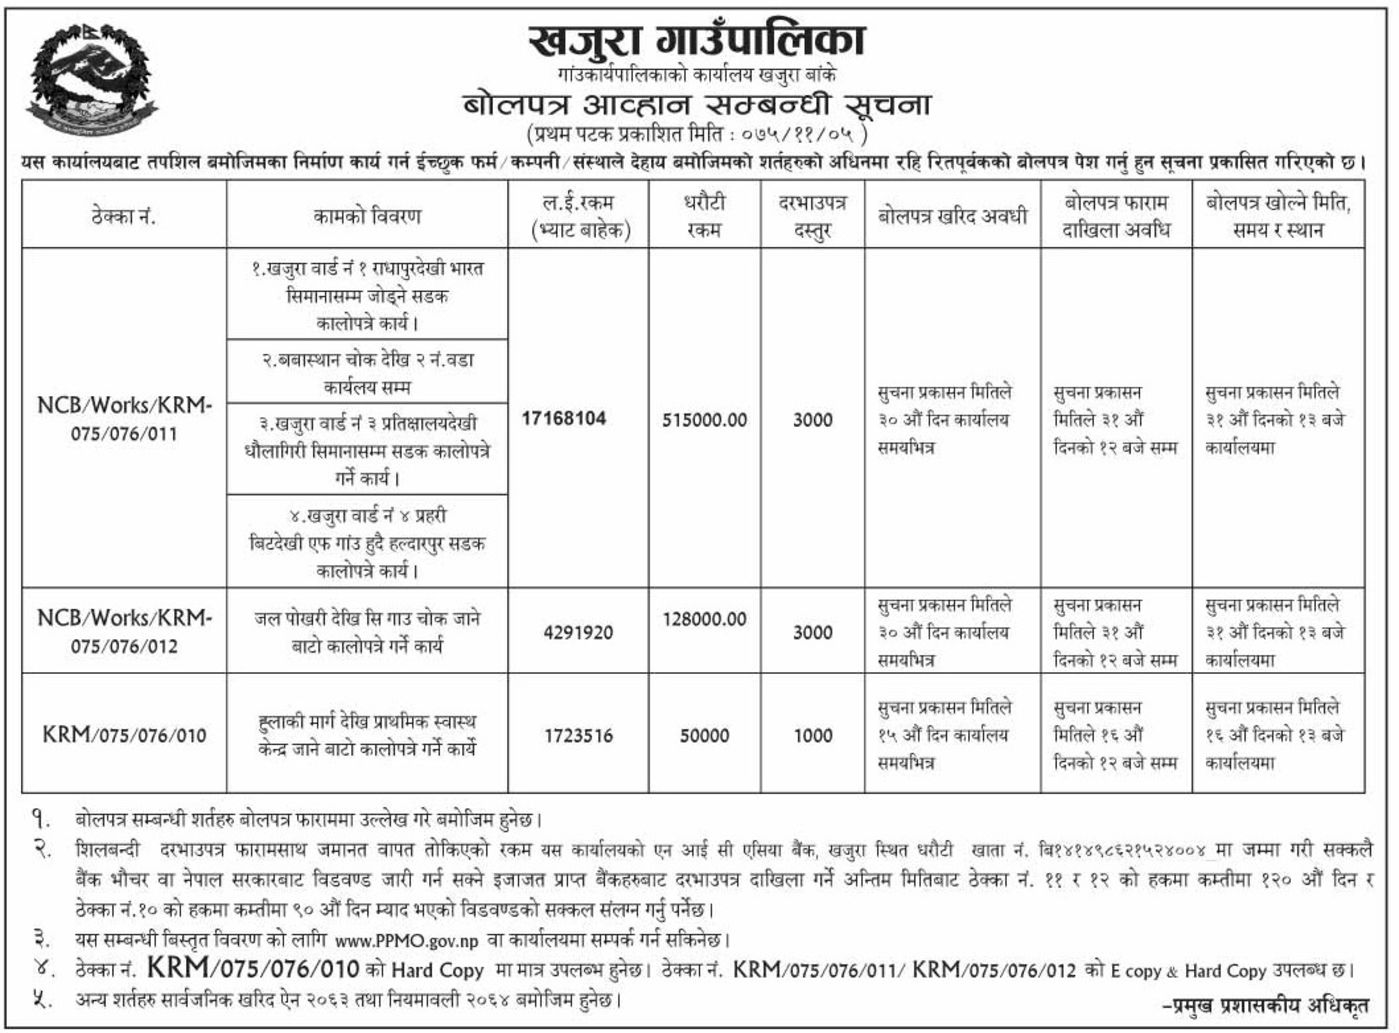 Bids and Tenders Nepal - Tender - Construction Of Black Topped Road